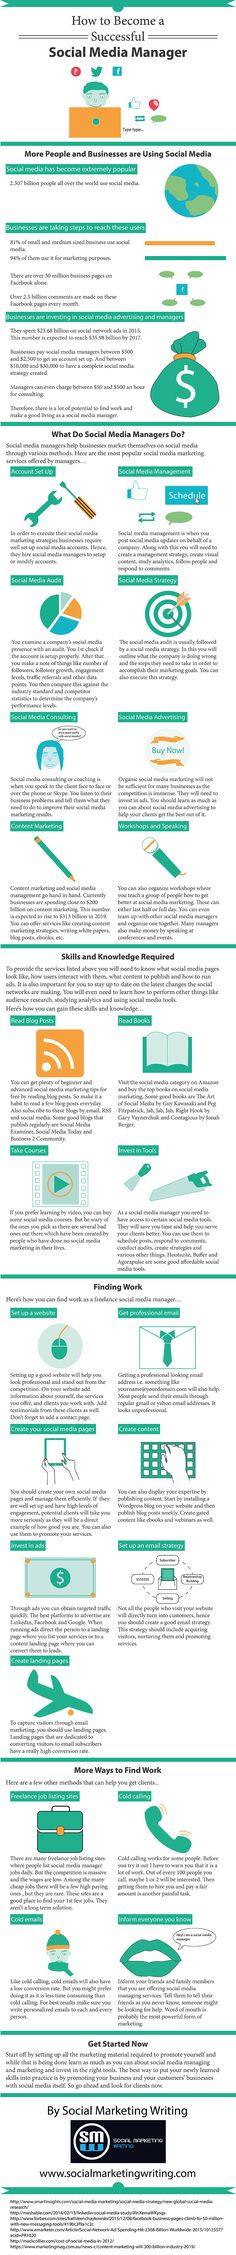 The Complete Guide to Being a Successful Social Media Manager - infographic